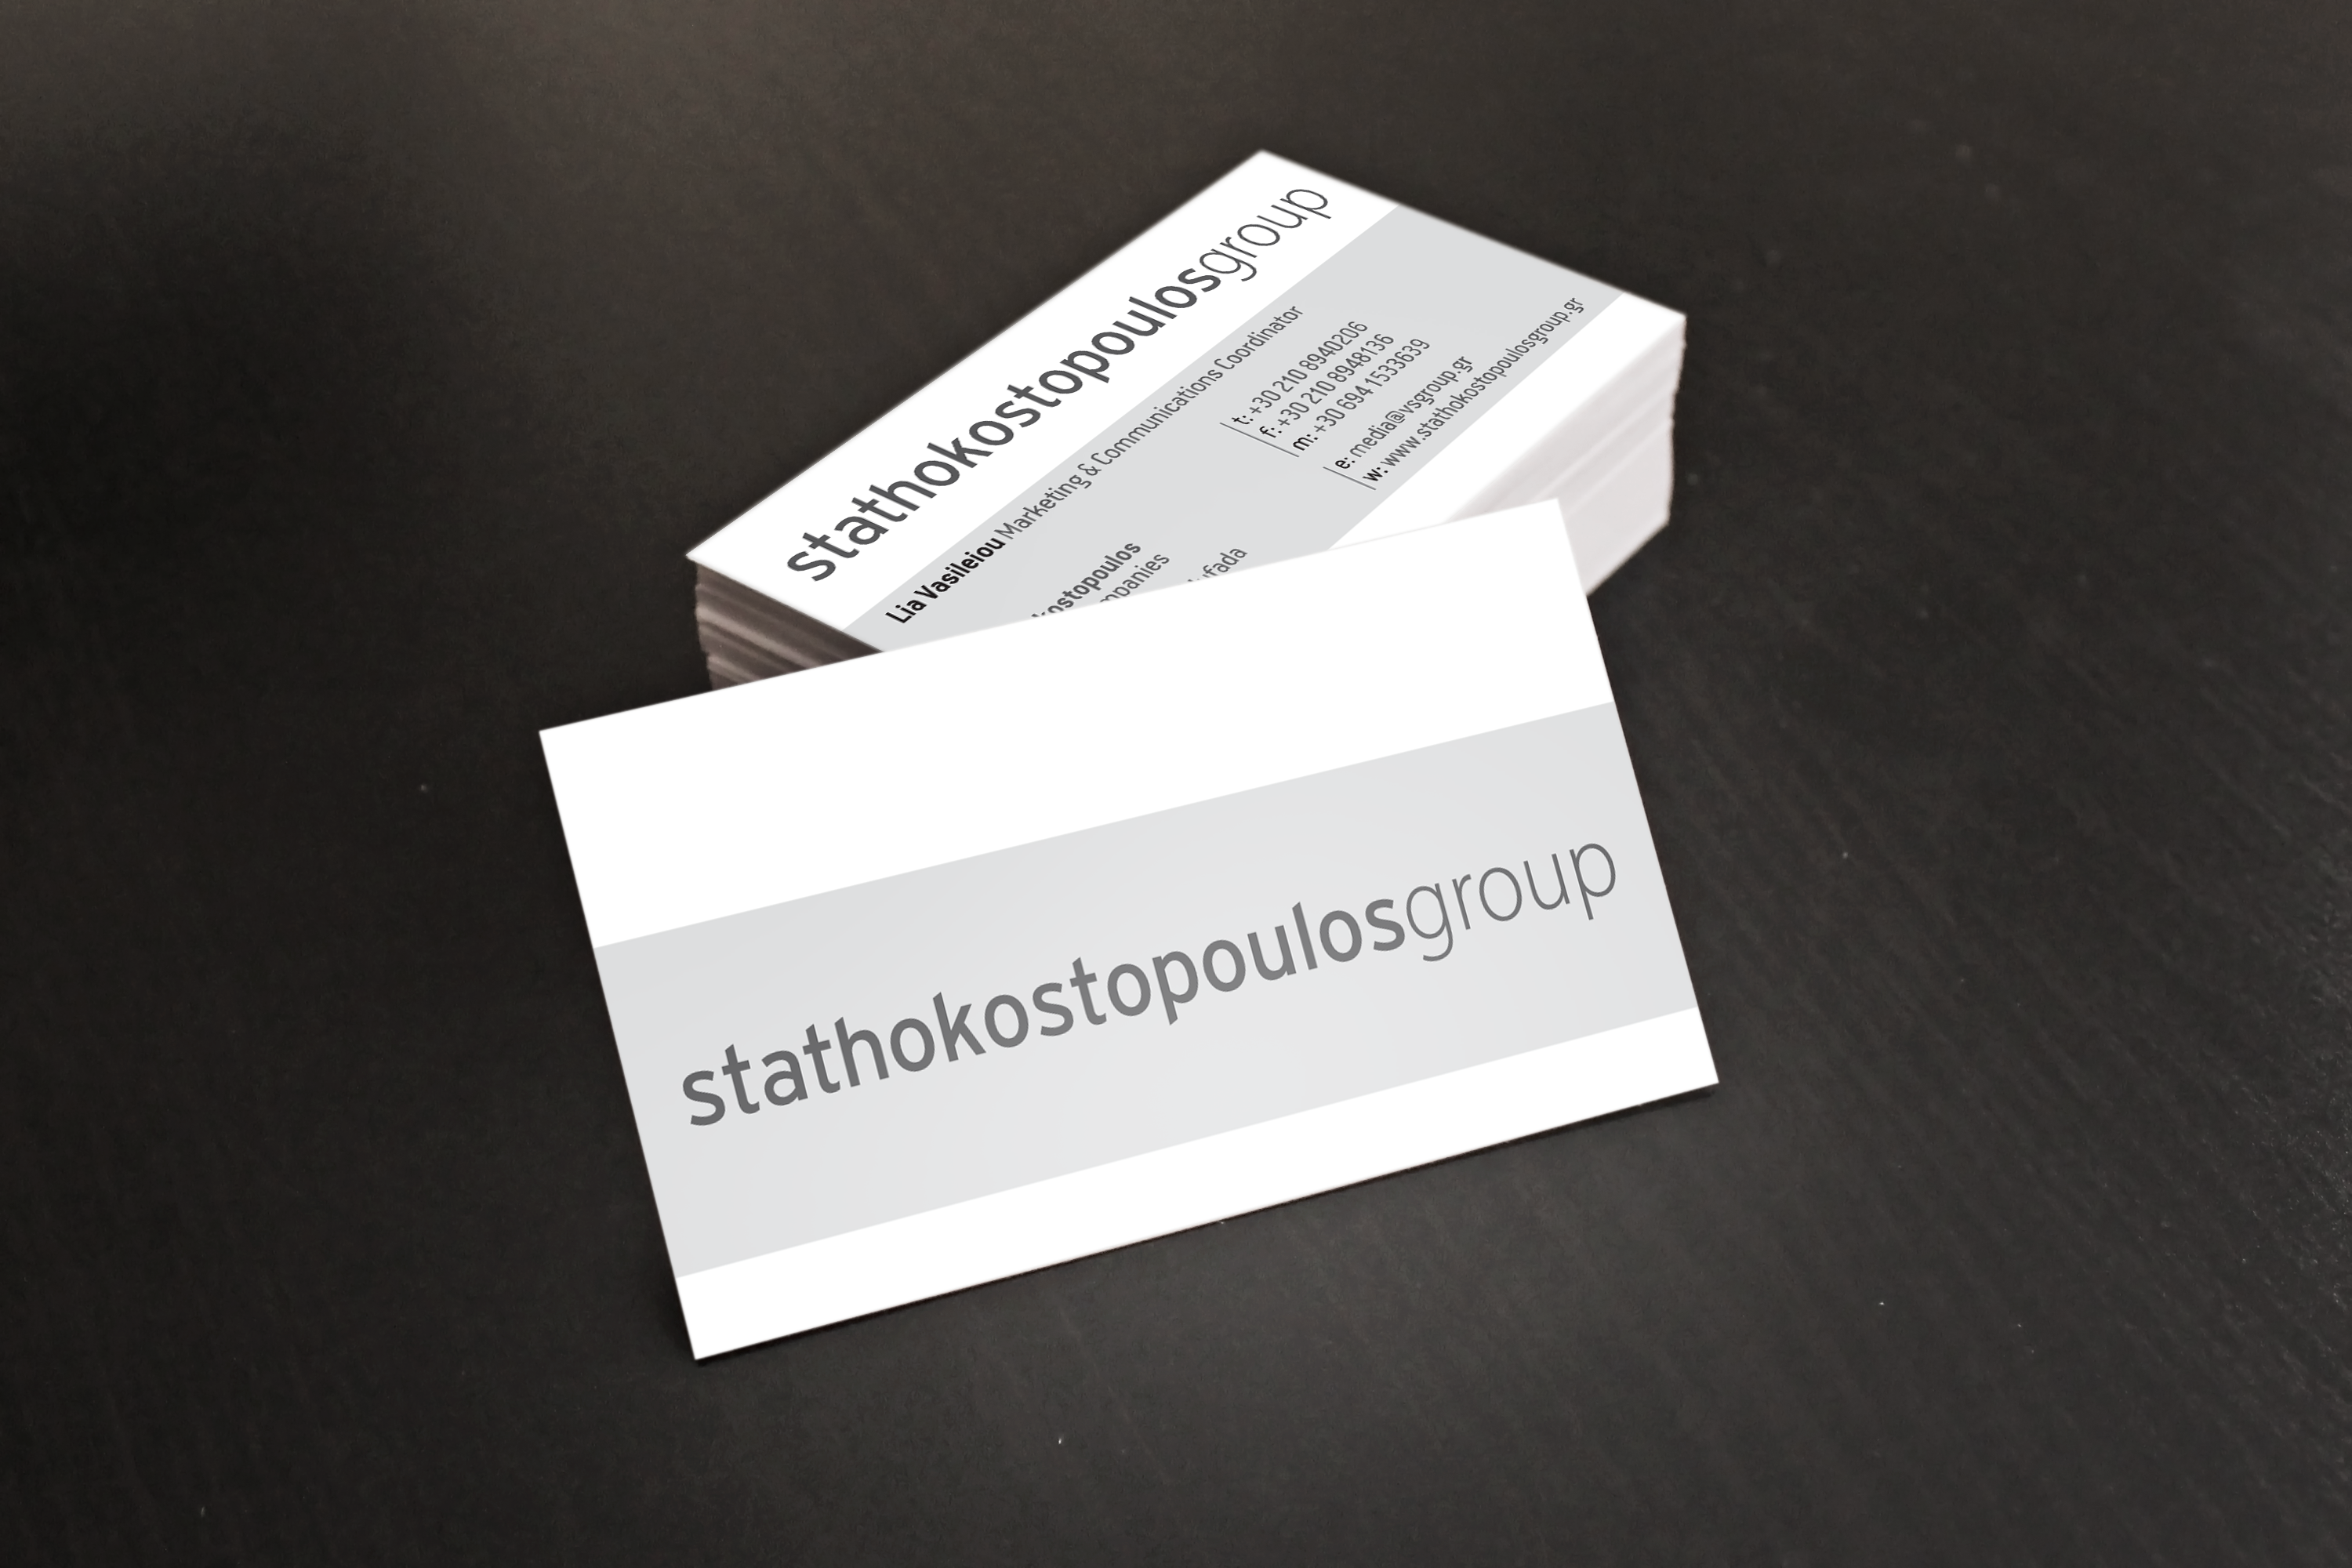 Stathokostopoulos group